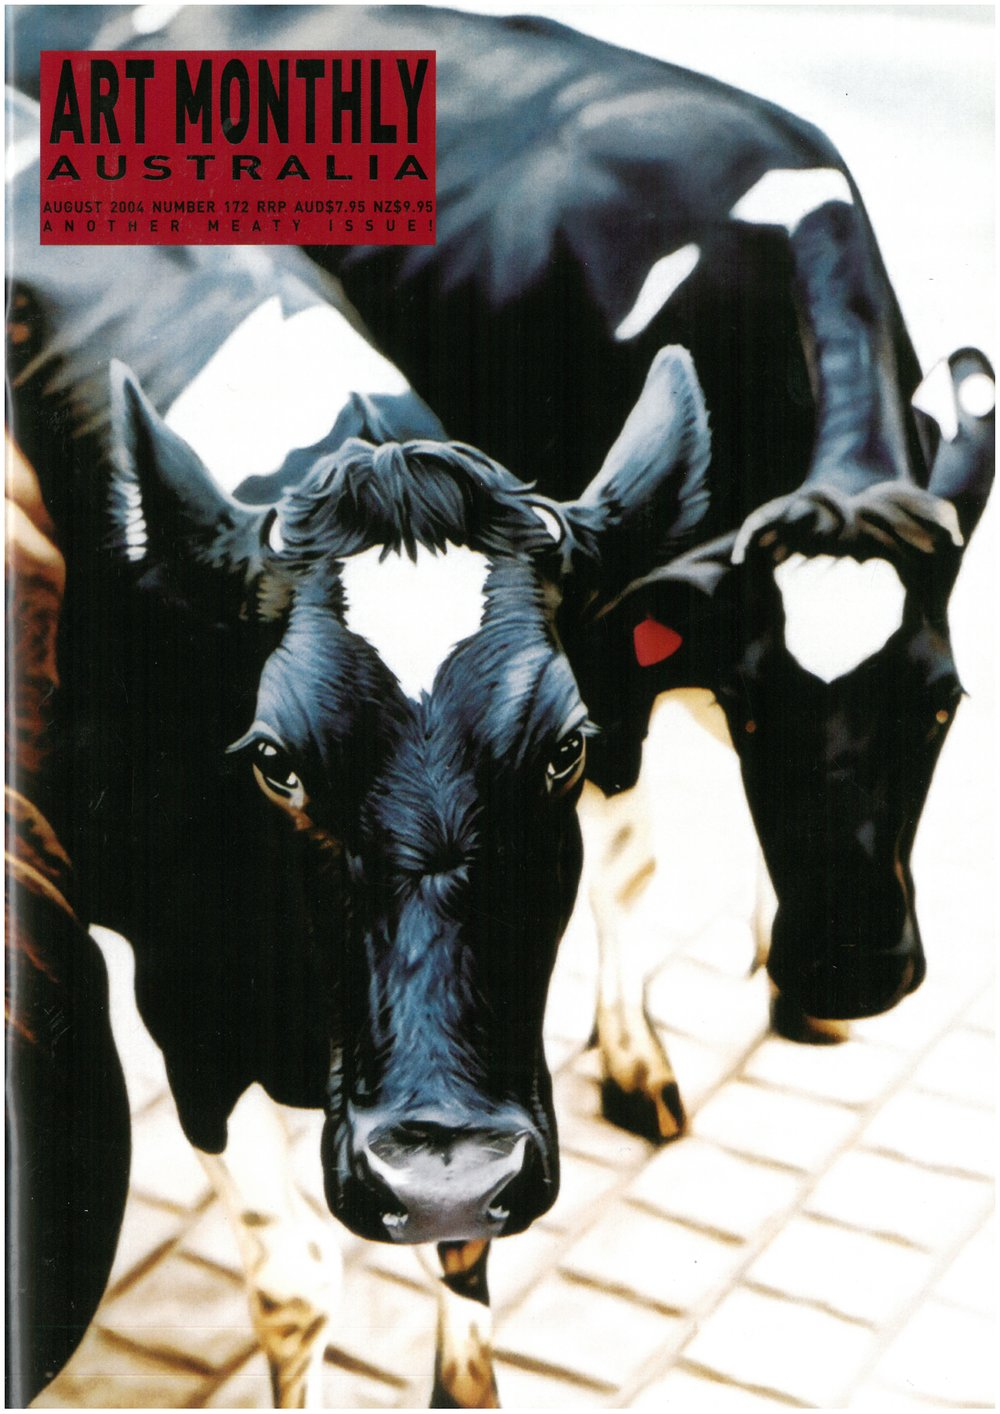 Issue 172 August 2004